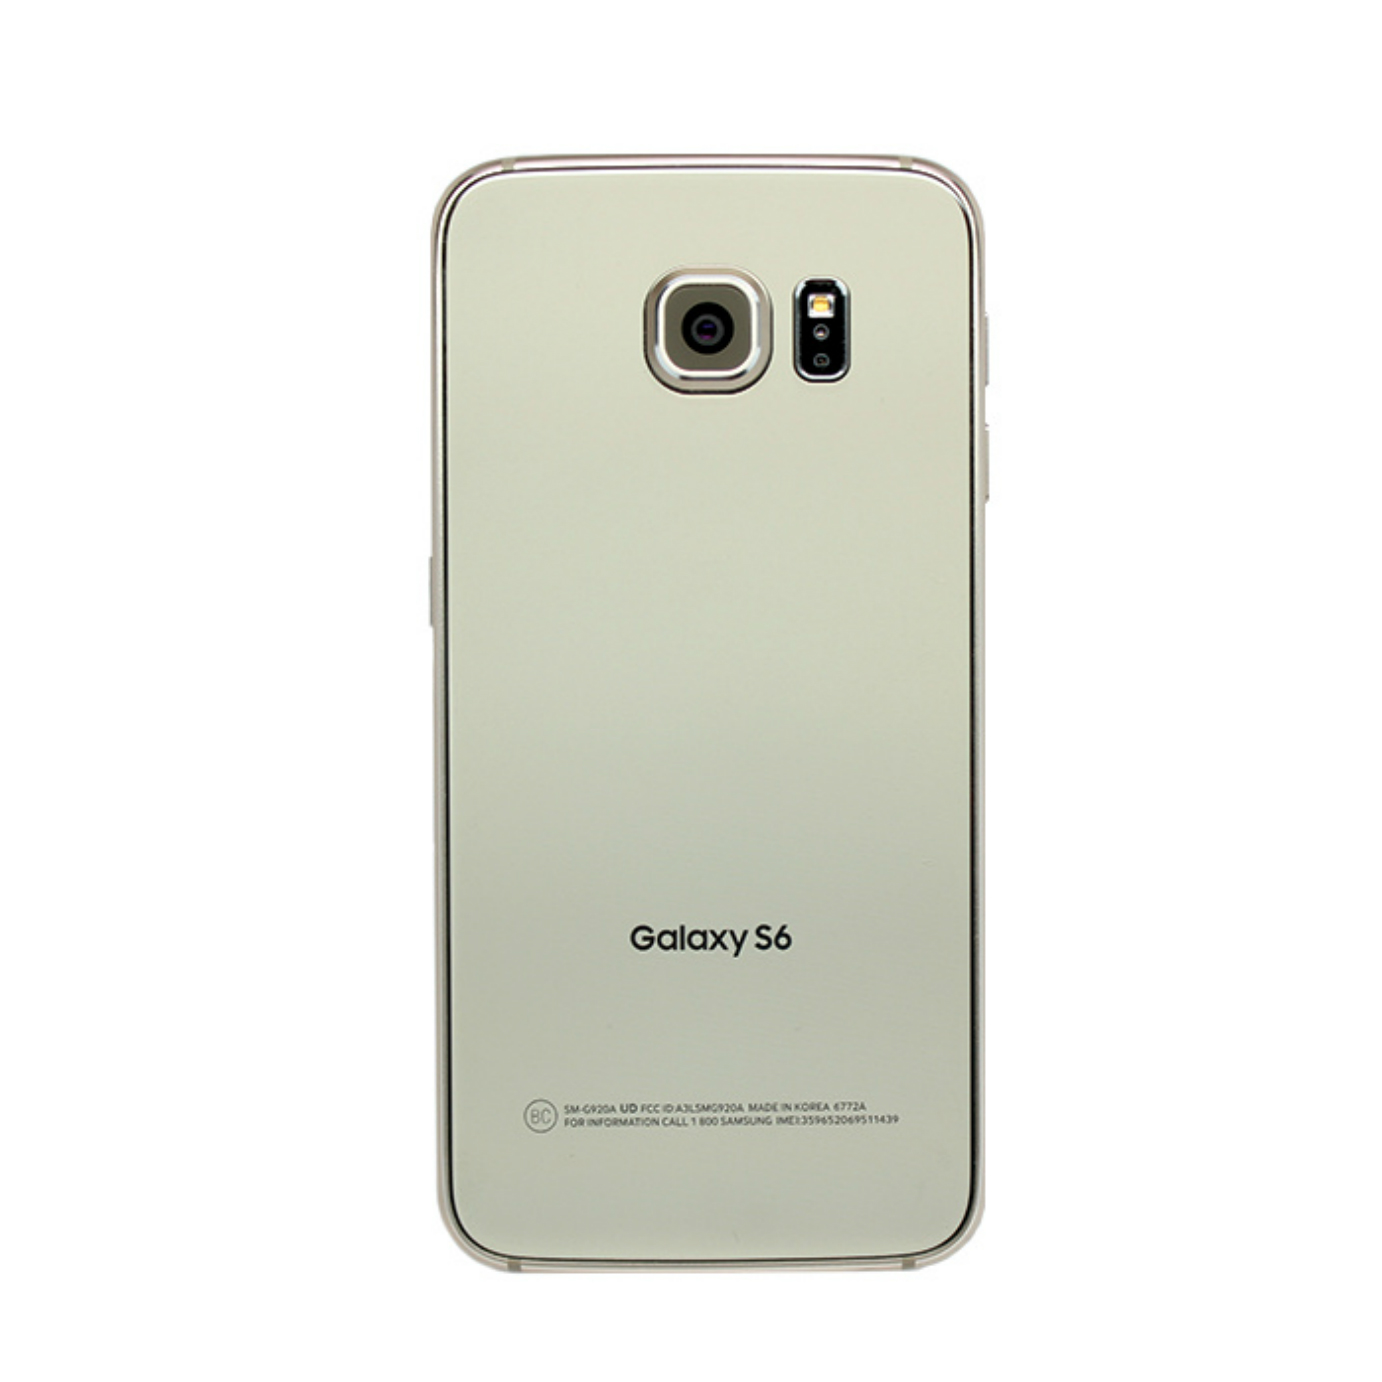 Samsung-Galaxy-S6-SM-G920T-32GB-Smartphone-for-T-Mobile